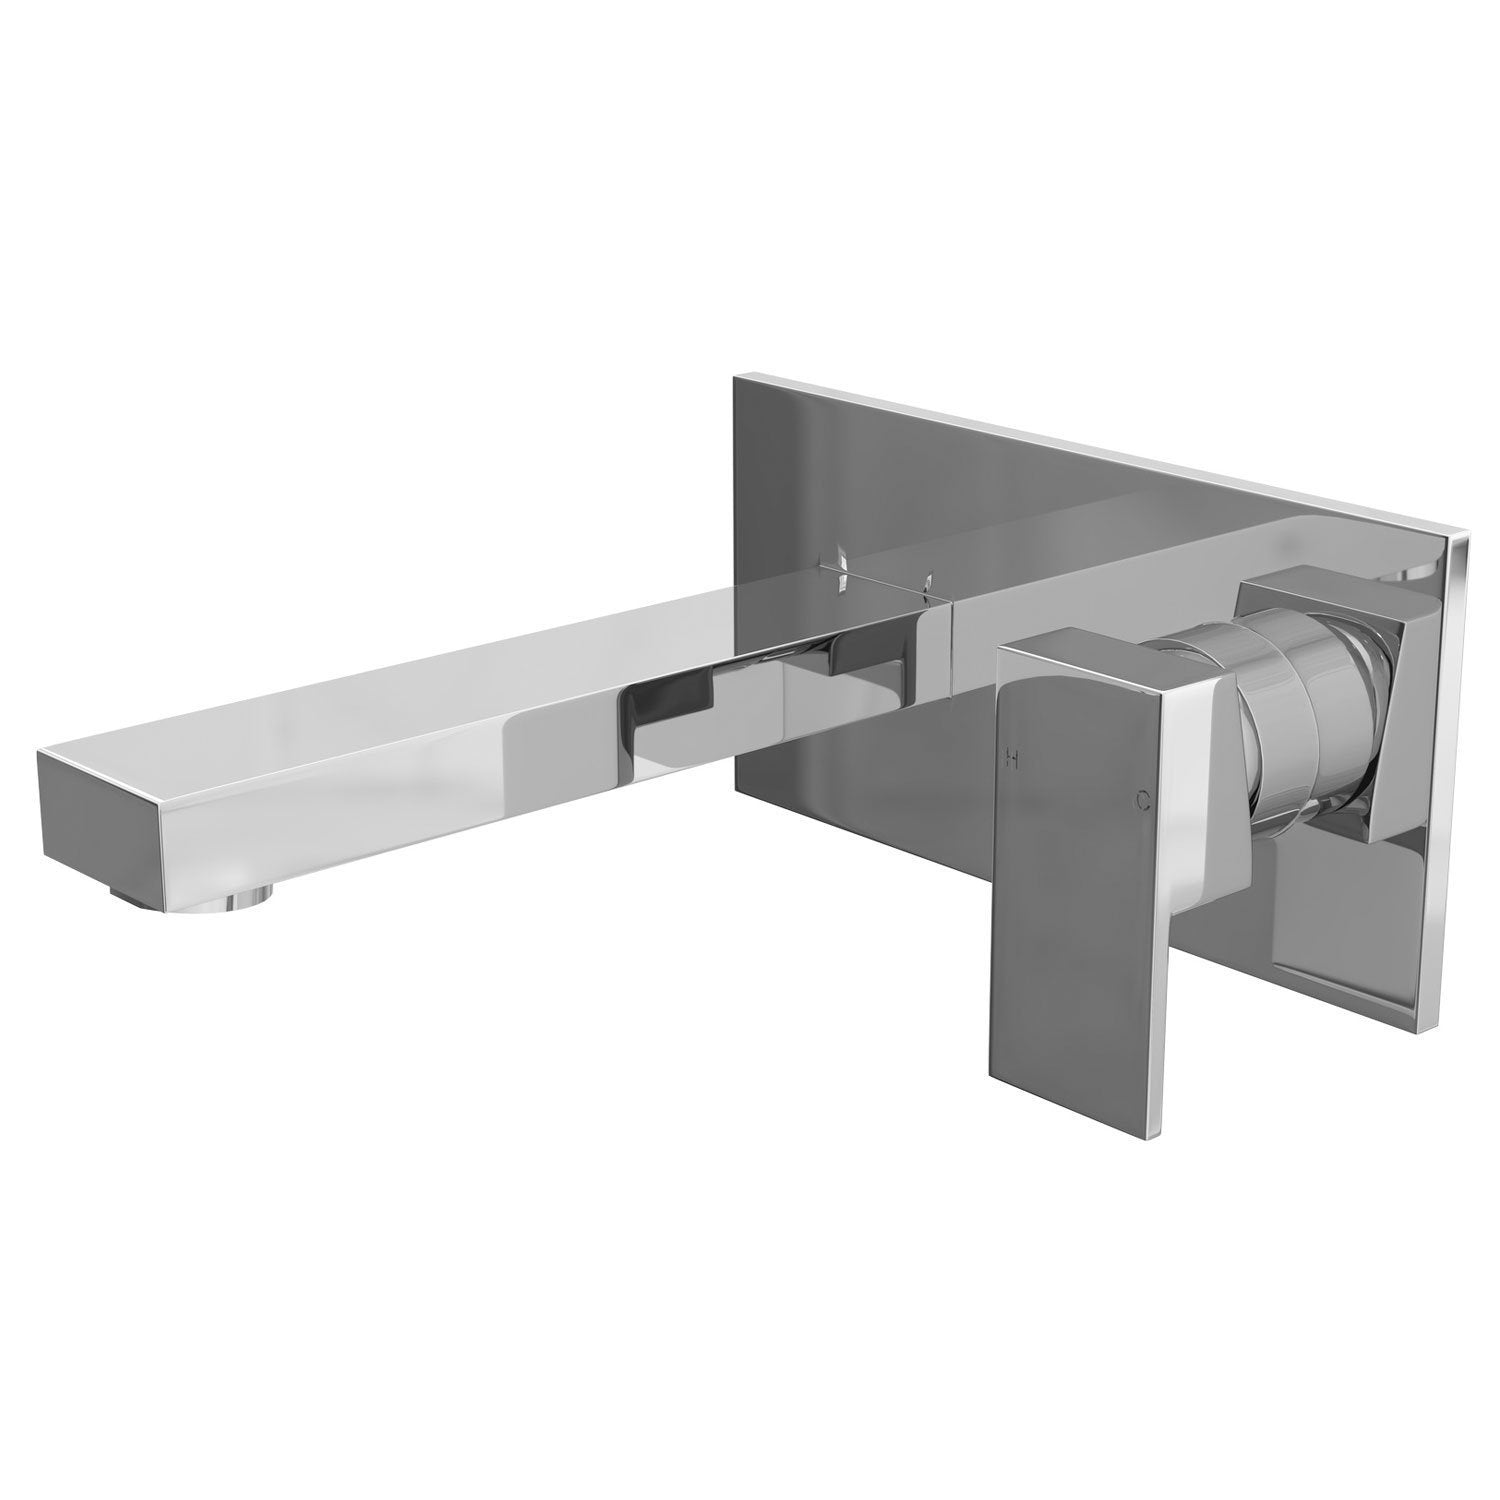 CLEARANCE Cassellie Form Wall Mounted Basin Mixer Tap - Chrome